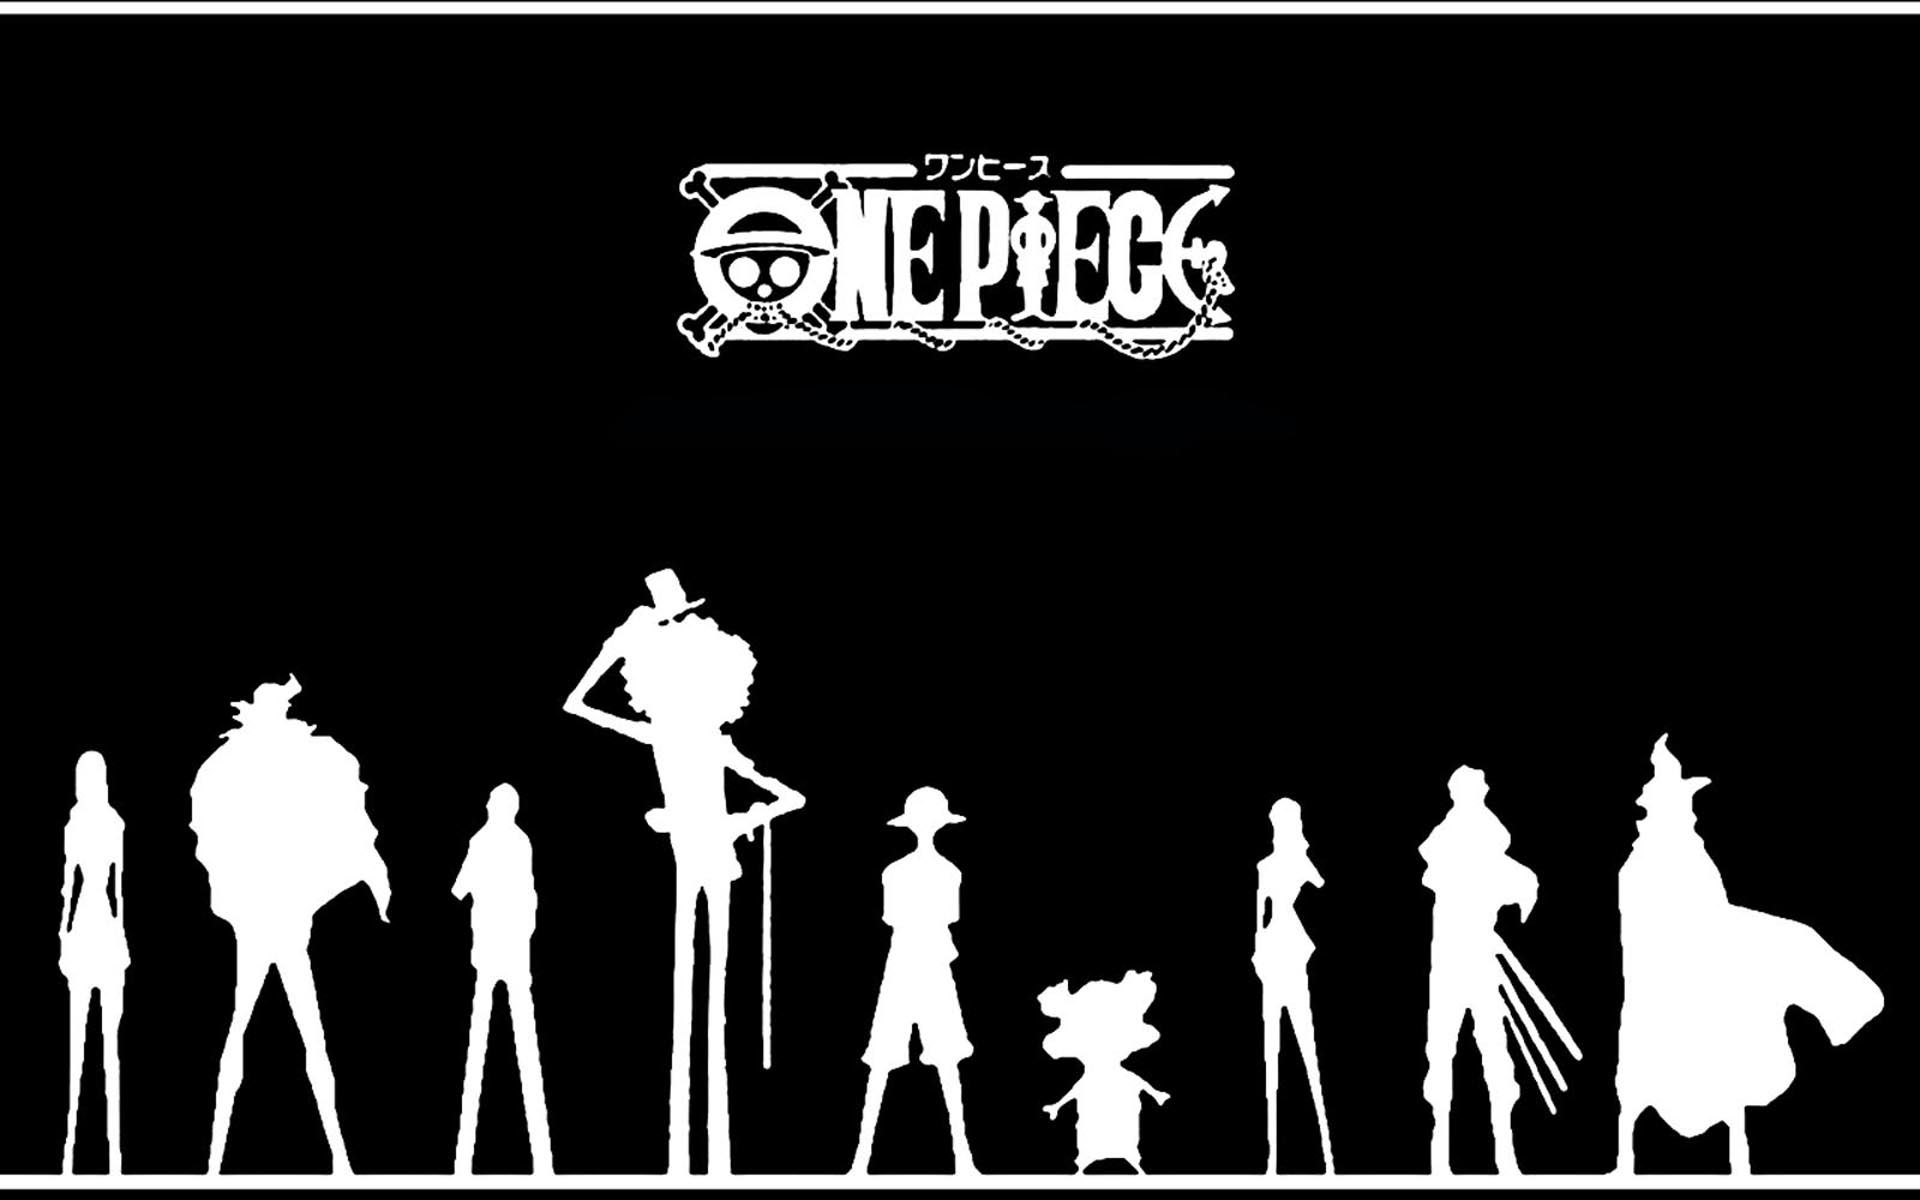 White Silhouette One Piece Character Anime Wallpaper Desktop